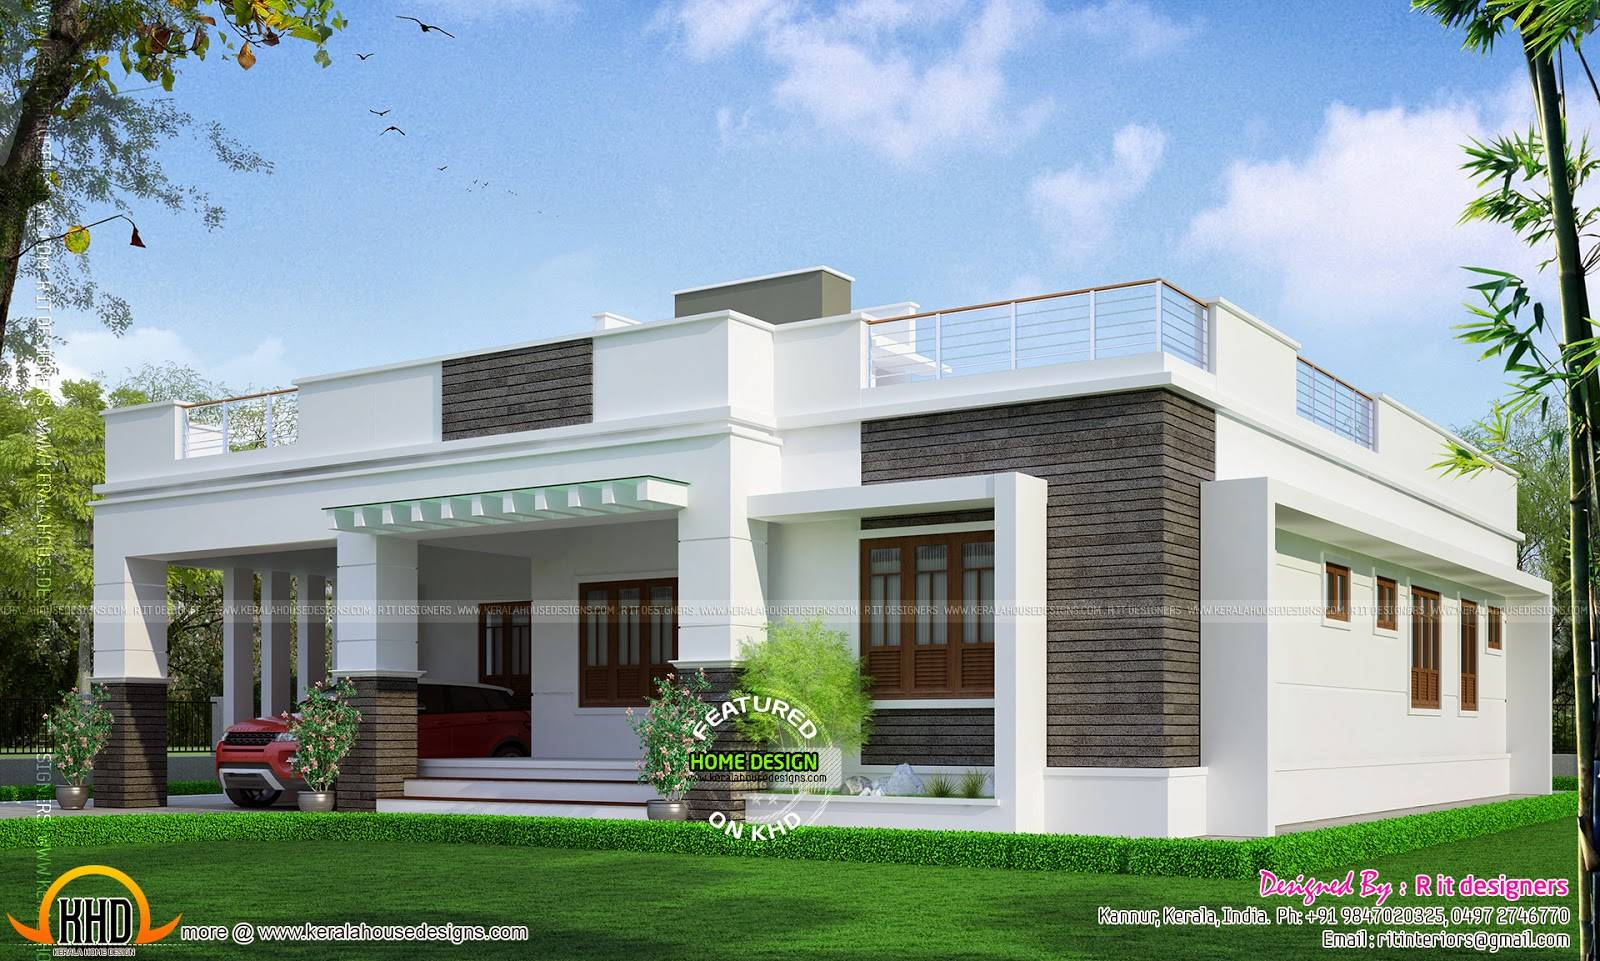 2 Storey House Designs Kerala - Interior Design ...